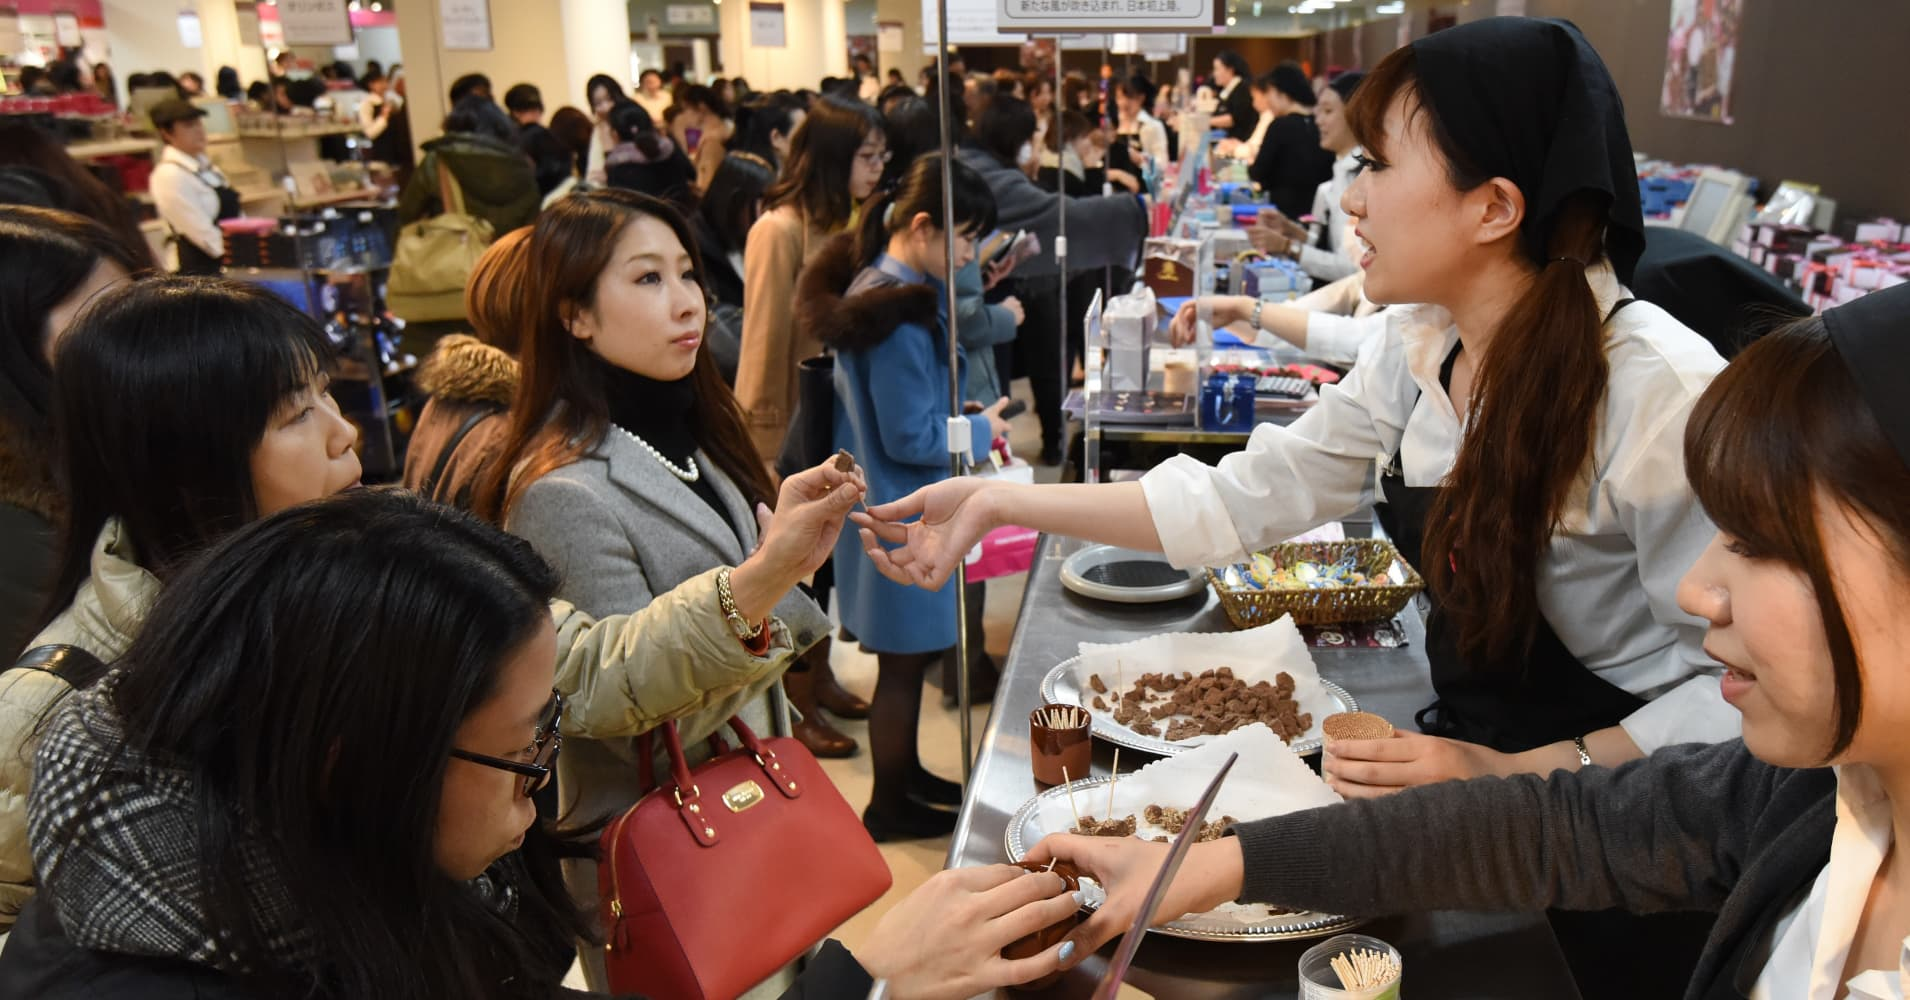 Vendors recommend chocolates to customers at a chocolate counters at the Printemps department store in Tokyo on Feb. 9, 2016, before Valentine's Day on Feb. 14. Elbowing each other in the stampede to buy Valentine's Day chocolate for the men in their lives, Japanese women brought stores to a standstill.